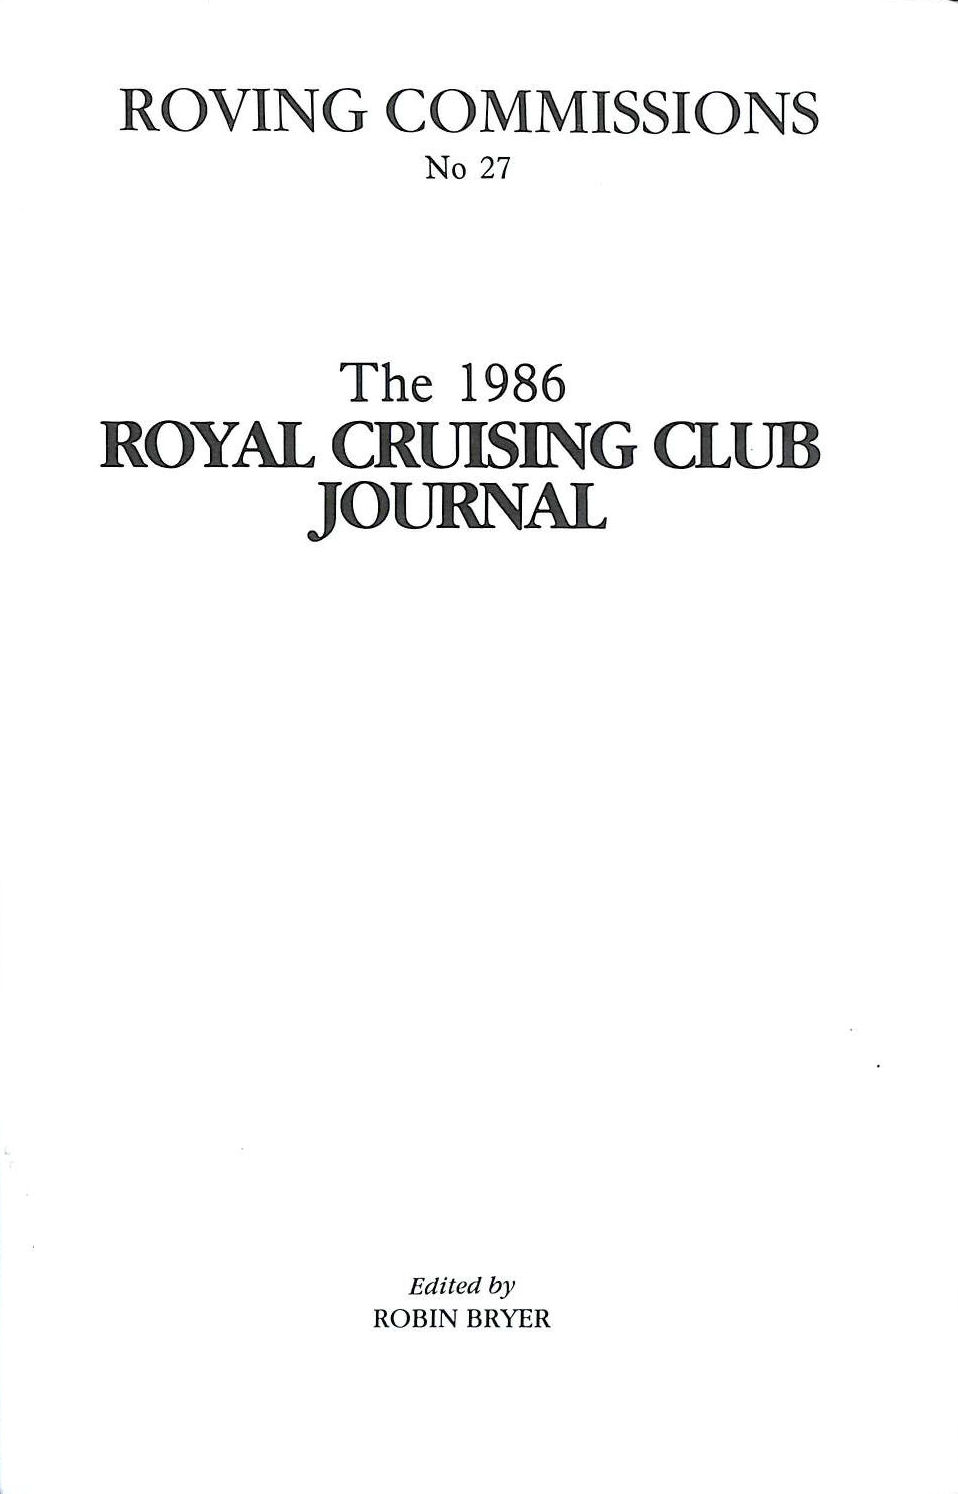 Image for Roving commissions No 27: the 1986 Royal Cruising Club journal